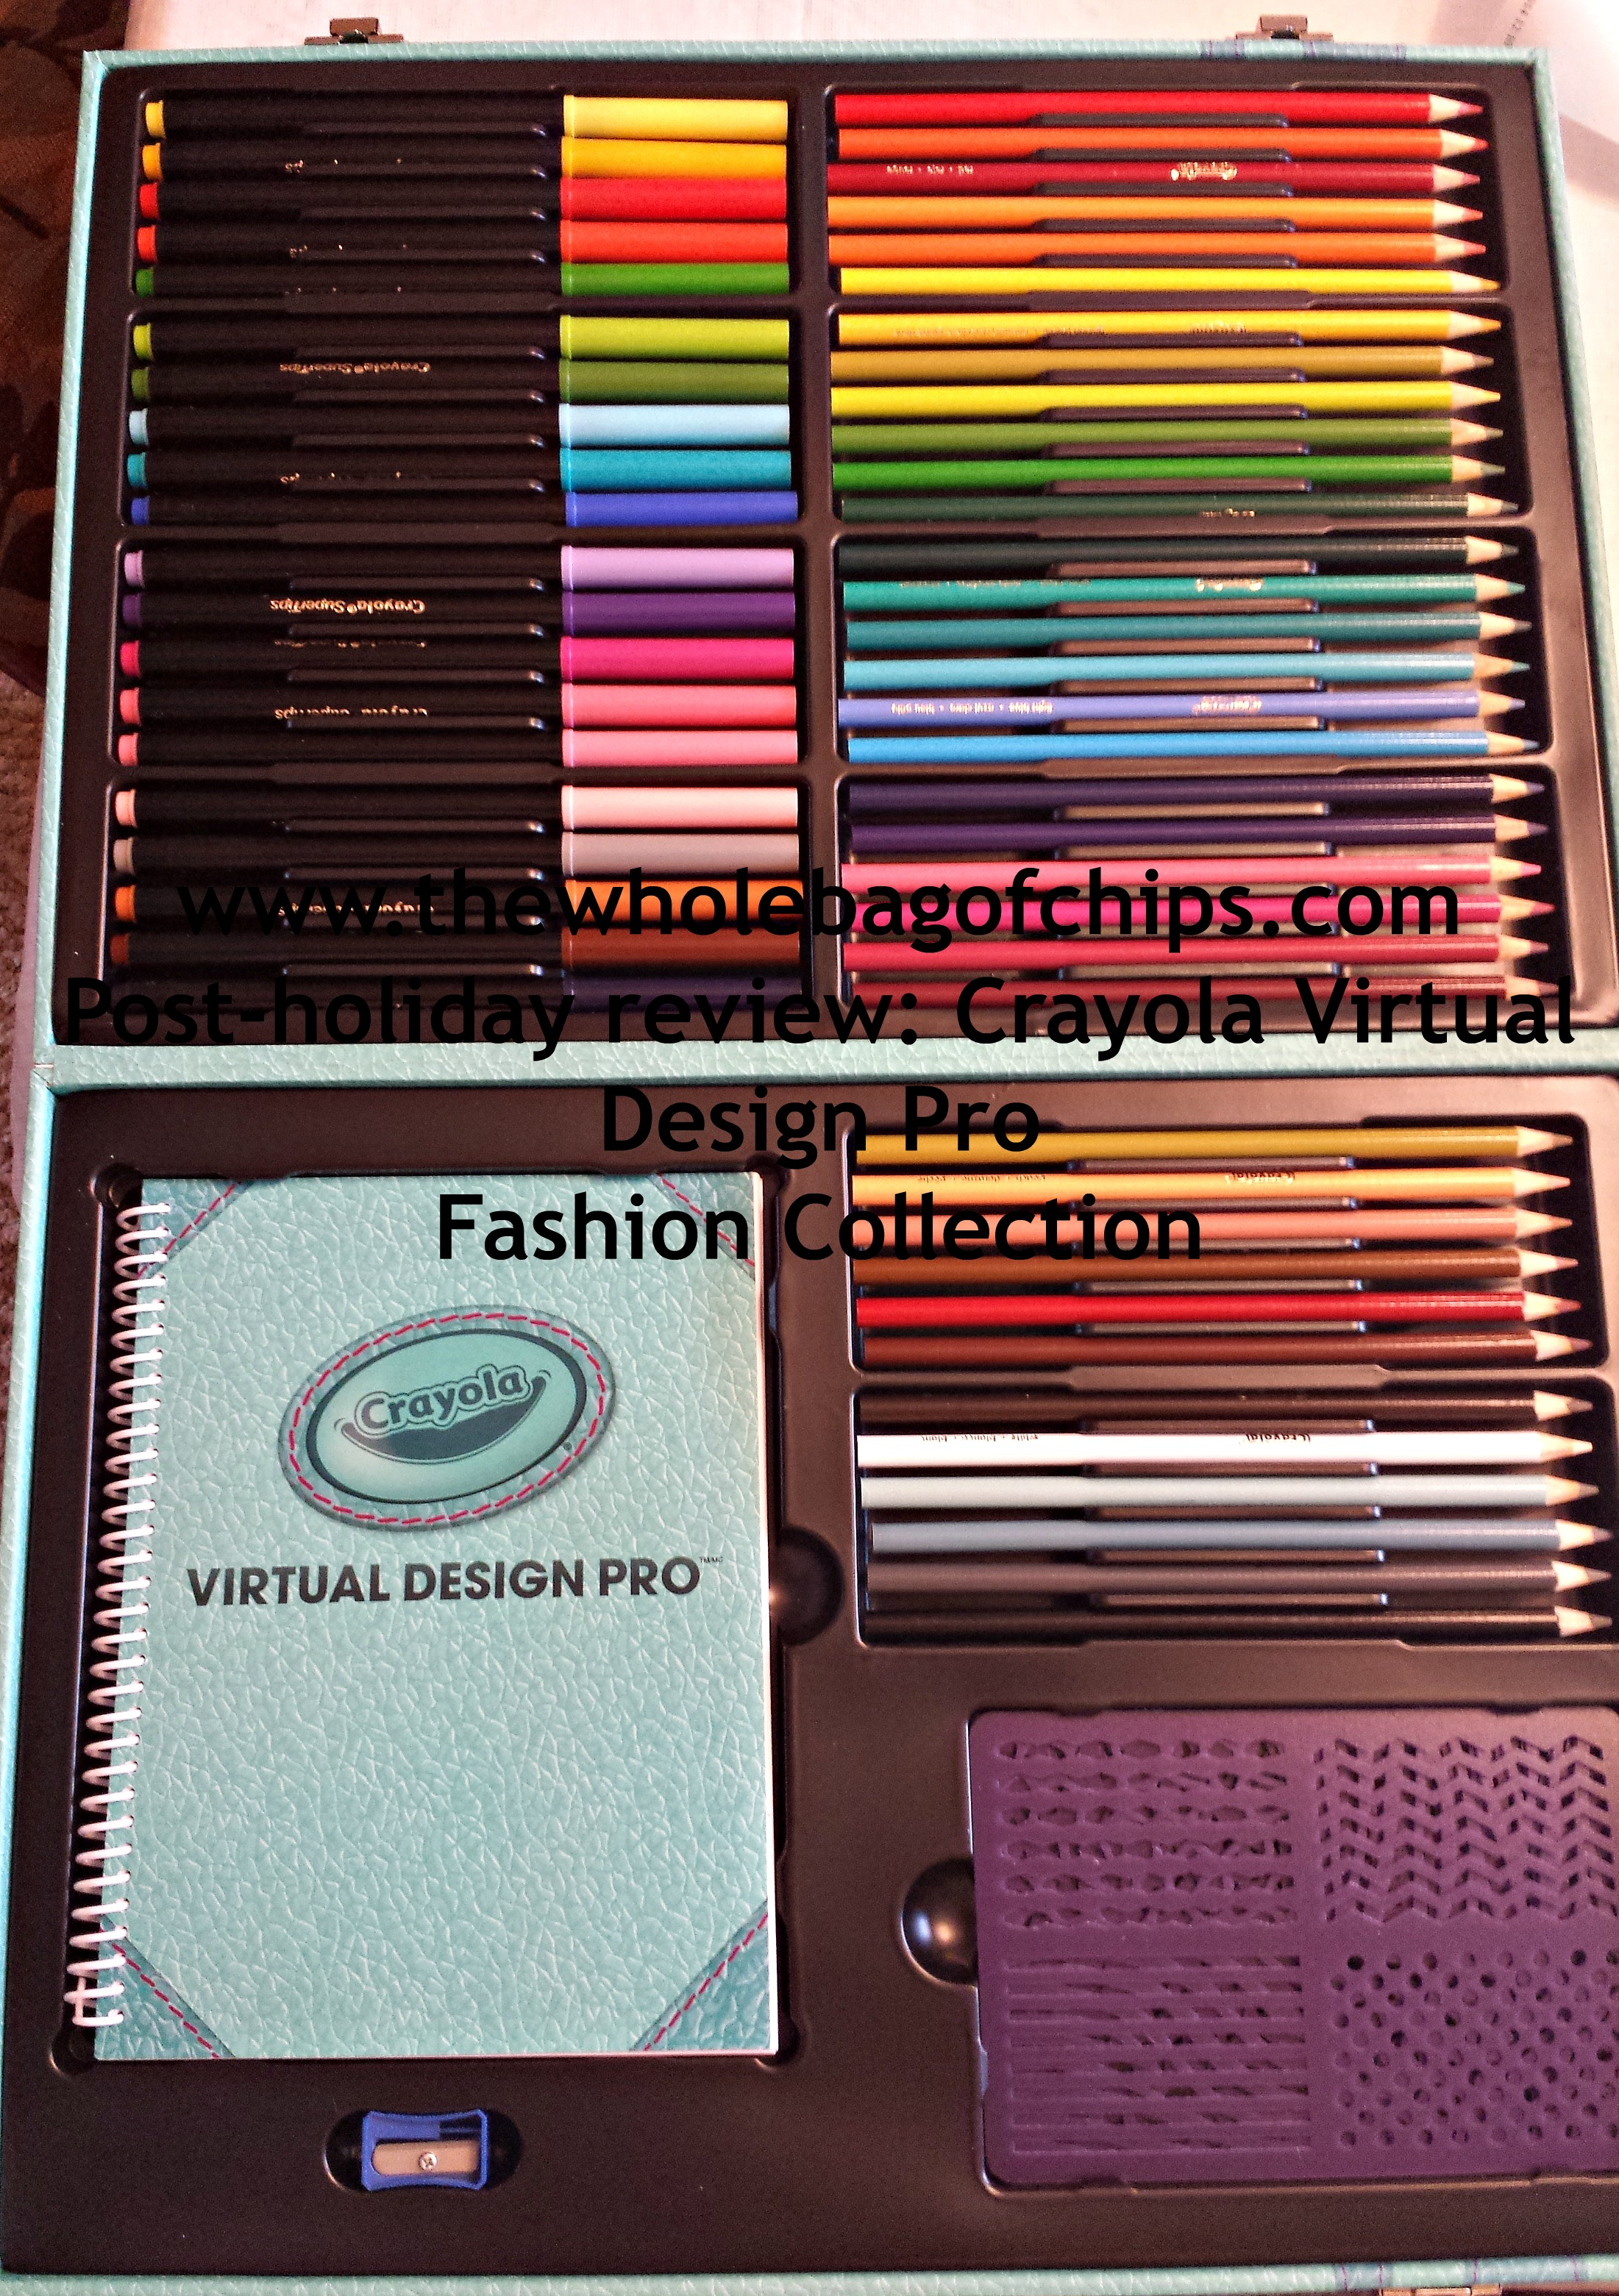 Post Holiday Review Crayola Virtual Design Pro Fashion Collection The Whole Bag Of Chips